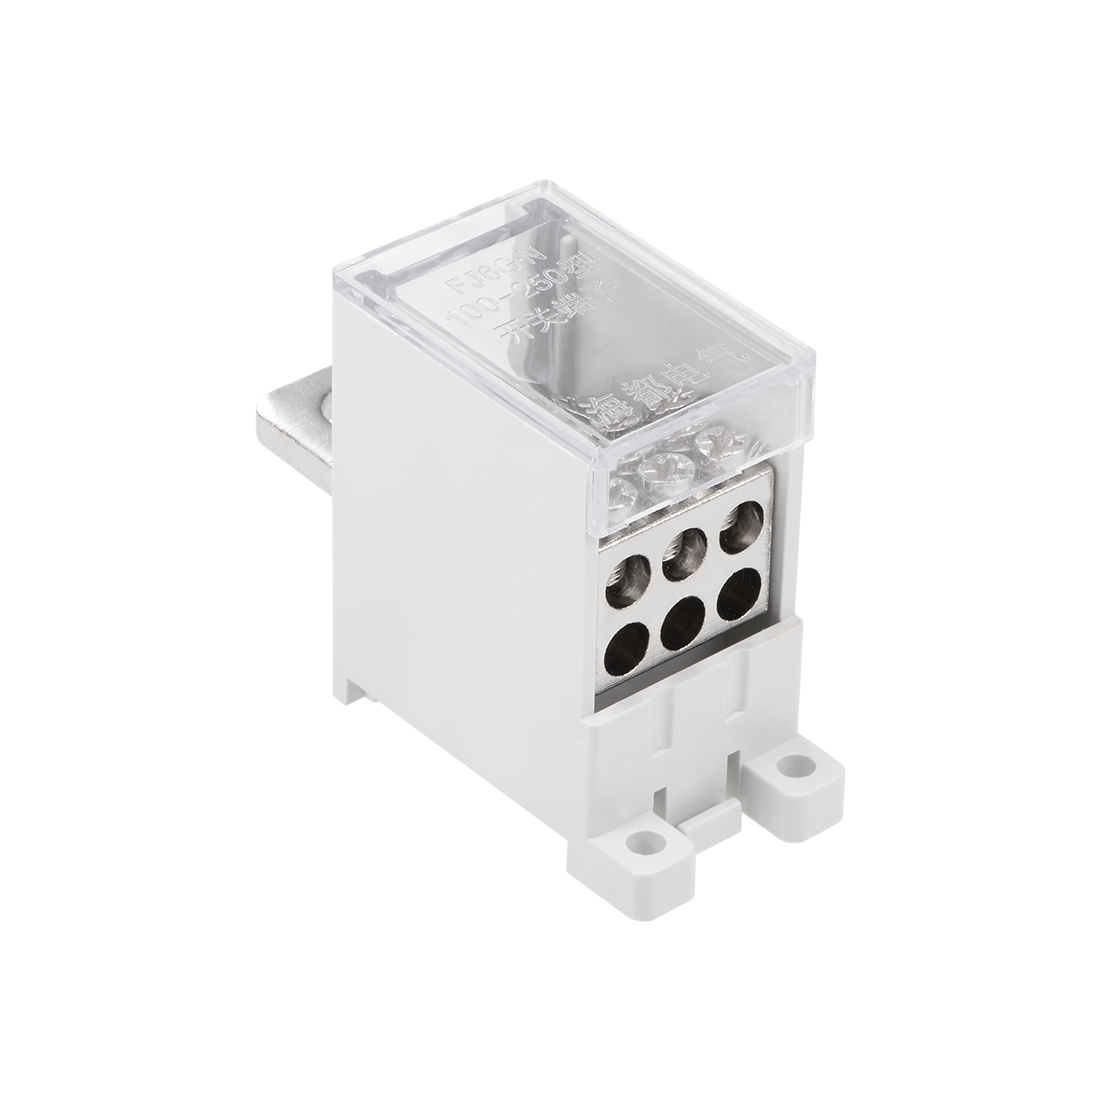 1 In 6 Out DIN Rail Terminal Blocks 250A Max Input Distribution Block